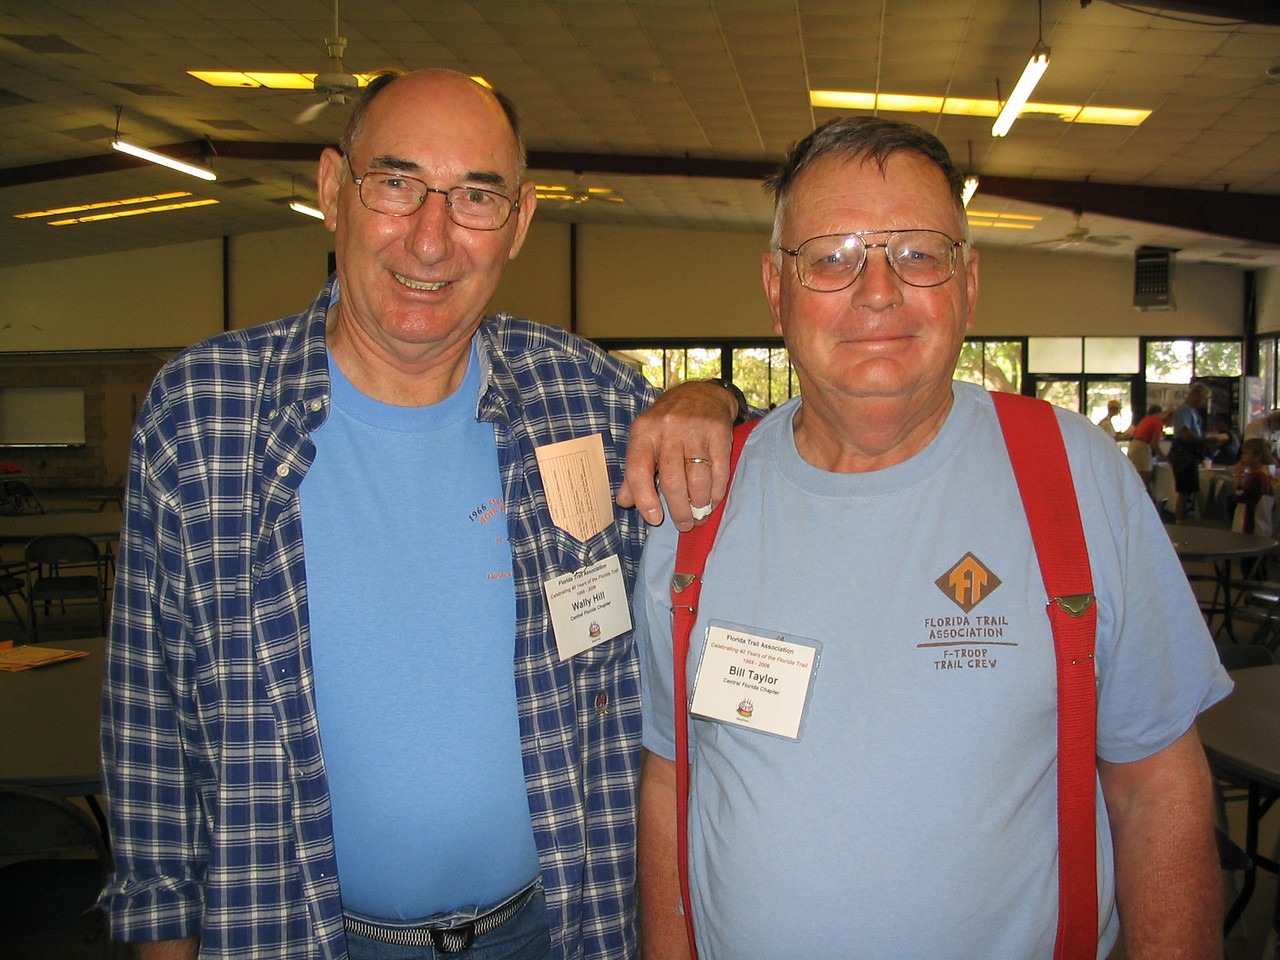 Wally Hill and Bill Taylor, tireless section leaders from Central Florida<br /> PHOTO CREDIT: Diane Wilkins / Florida Trail Association